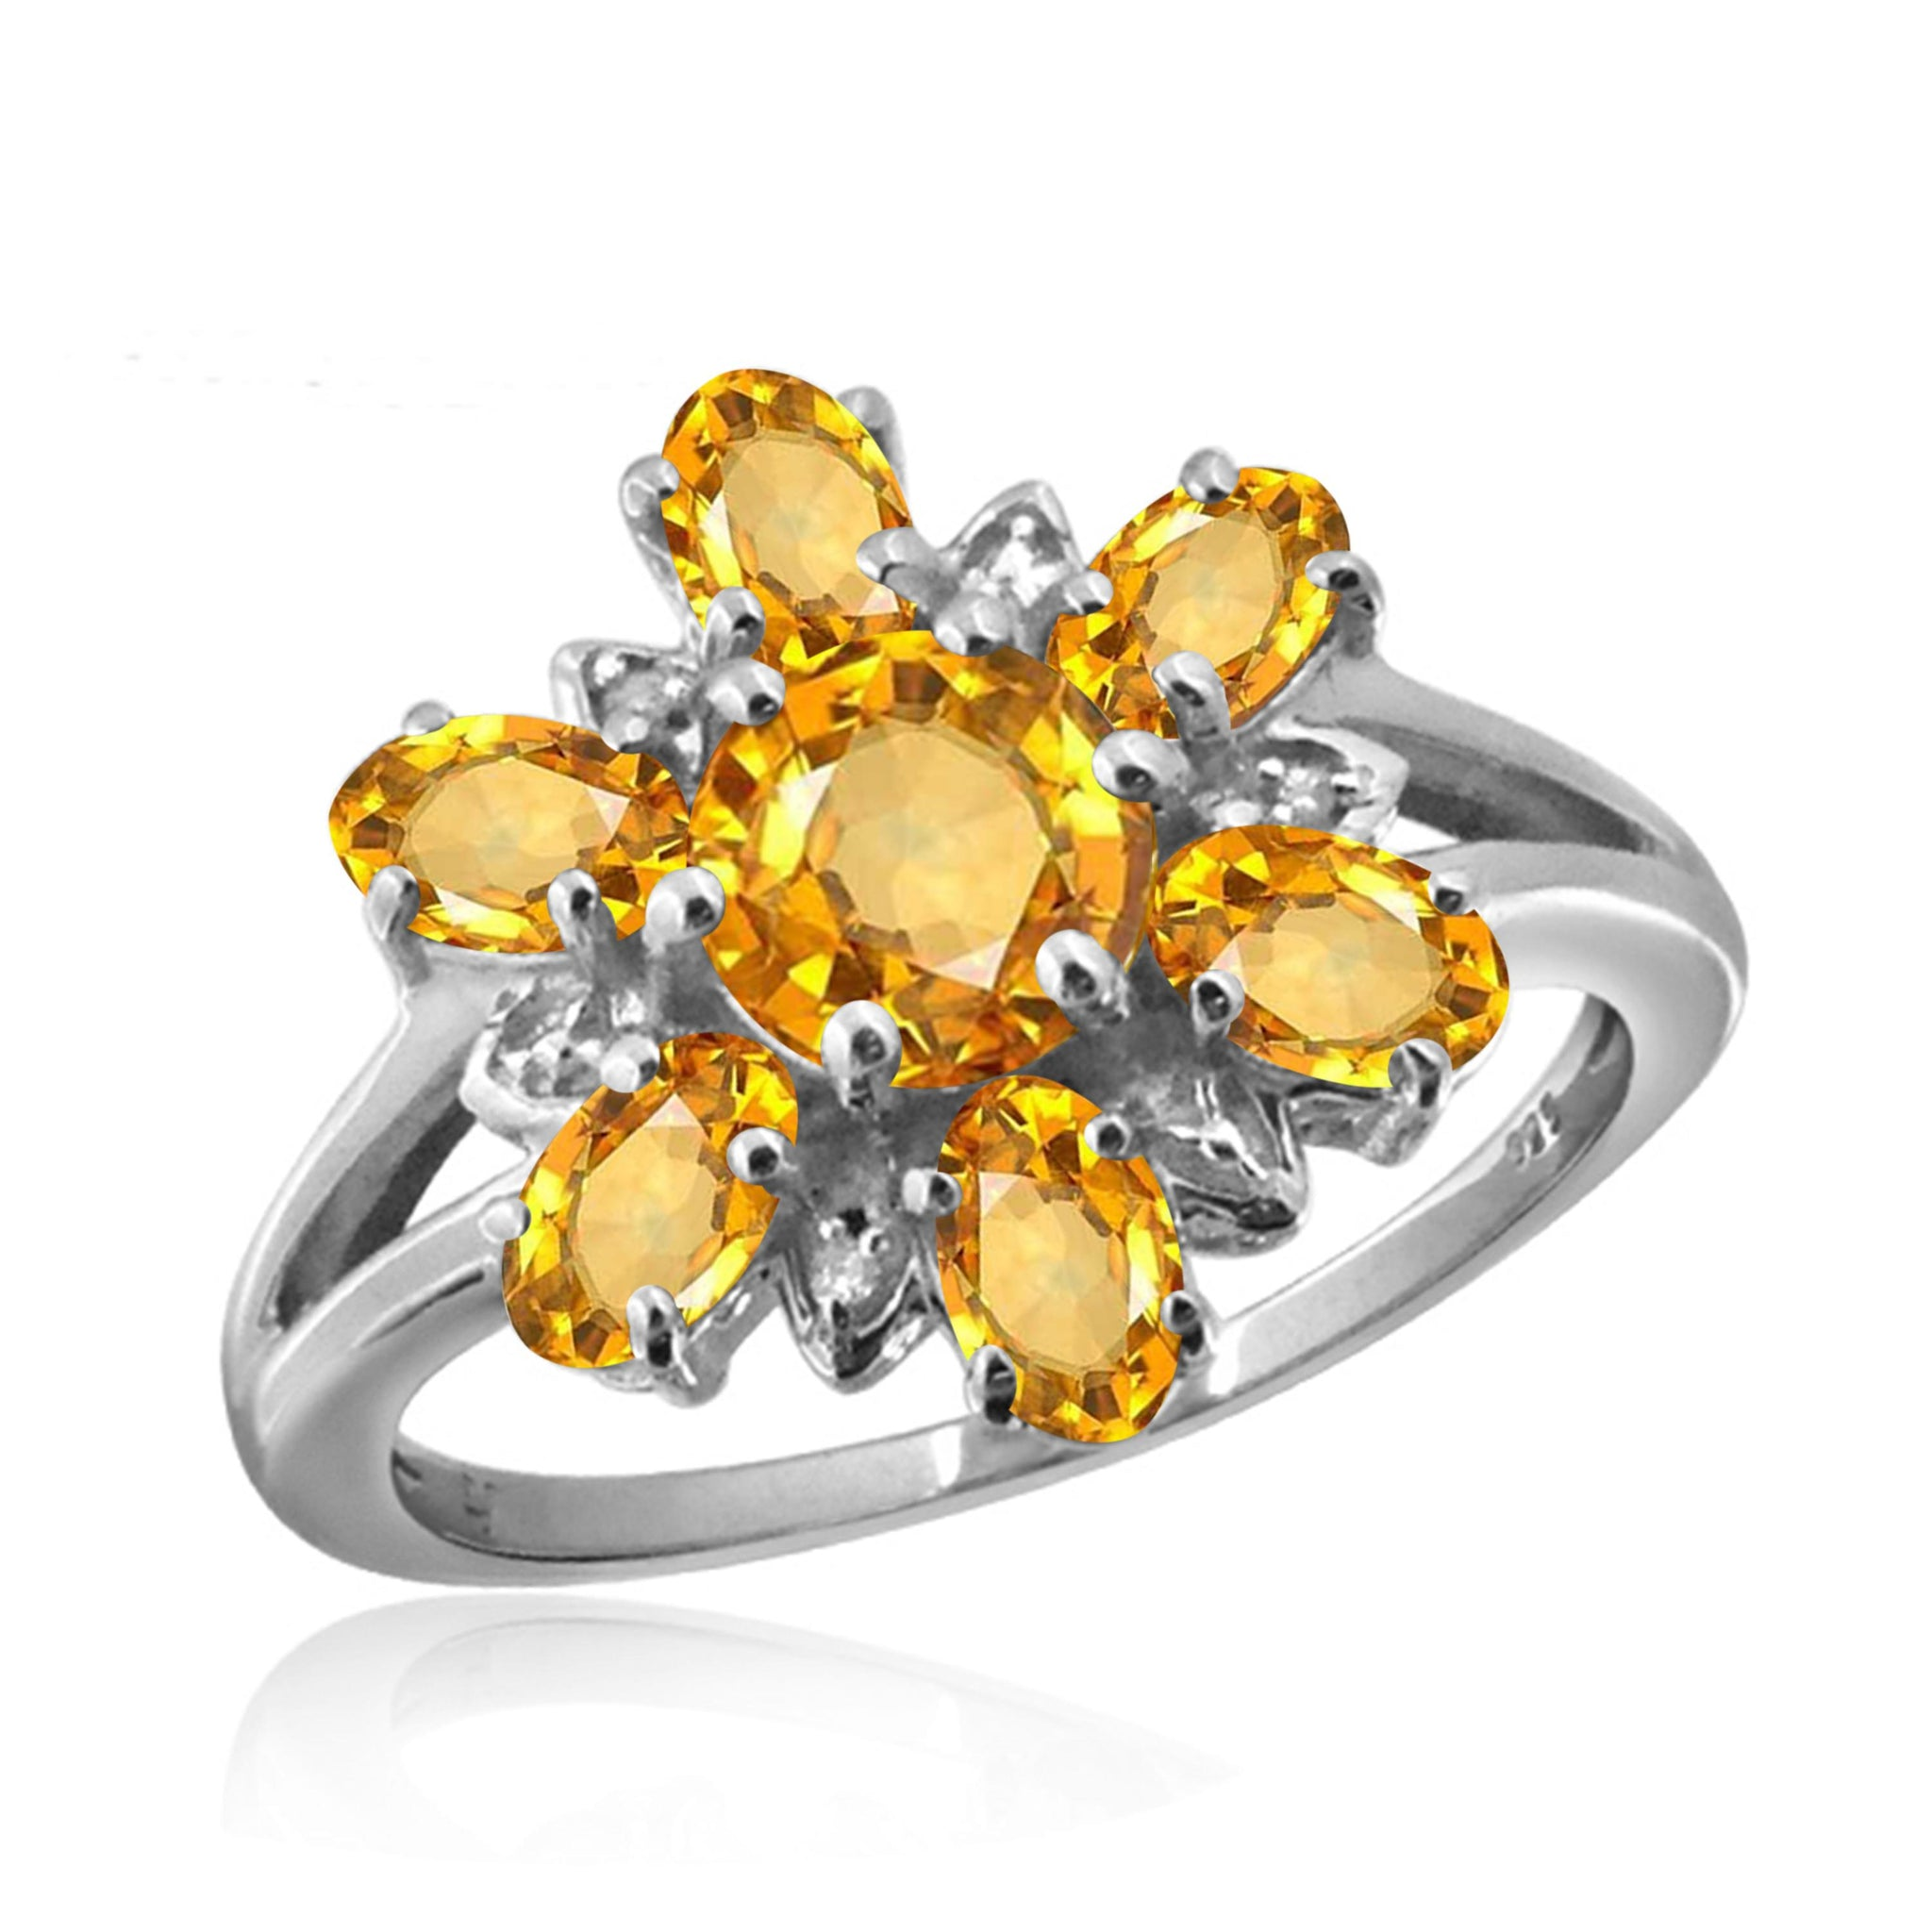 JewelonFire 2.00 Carat T.G.W. Citrine And White Diamond Accent Sterling Silver Ring - Assorted Colors